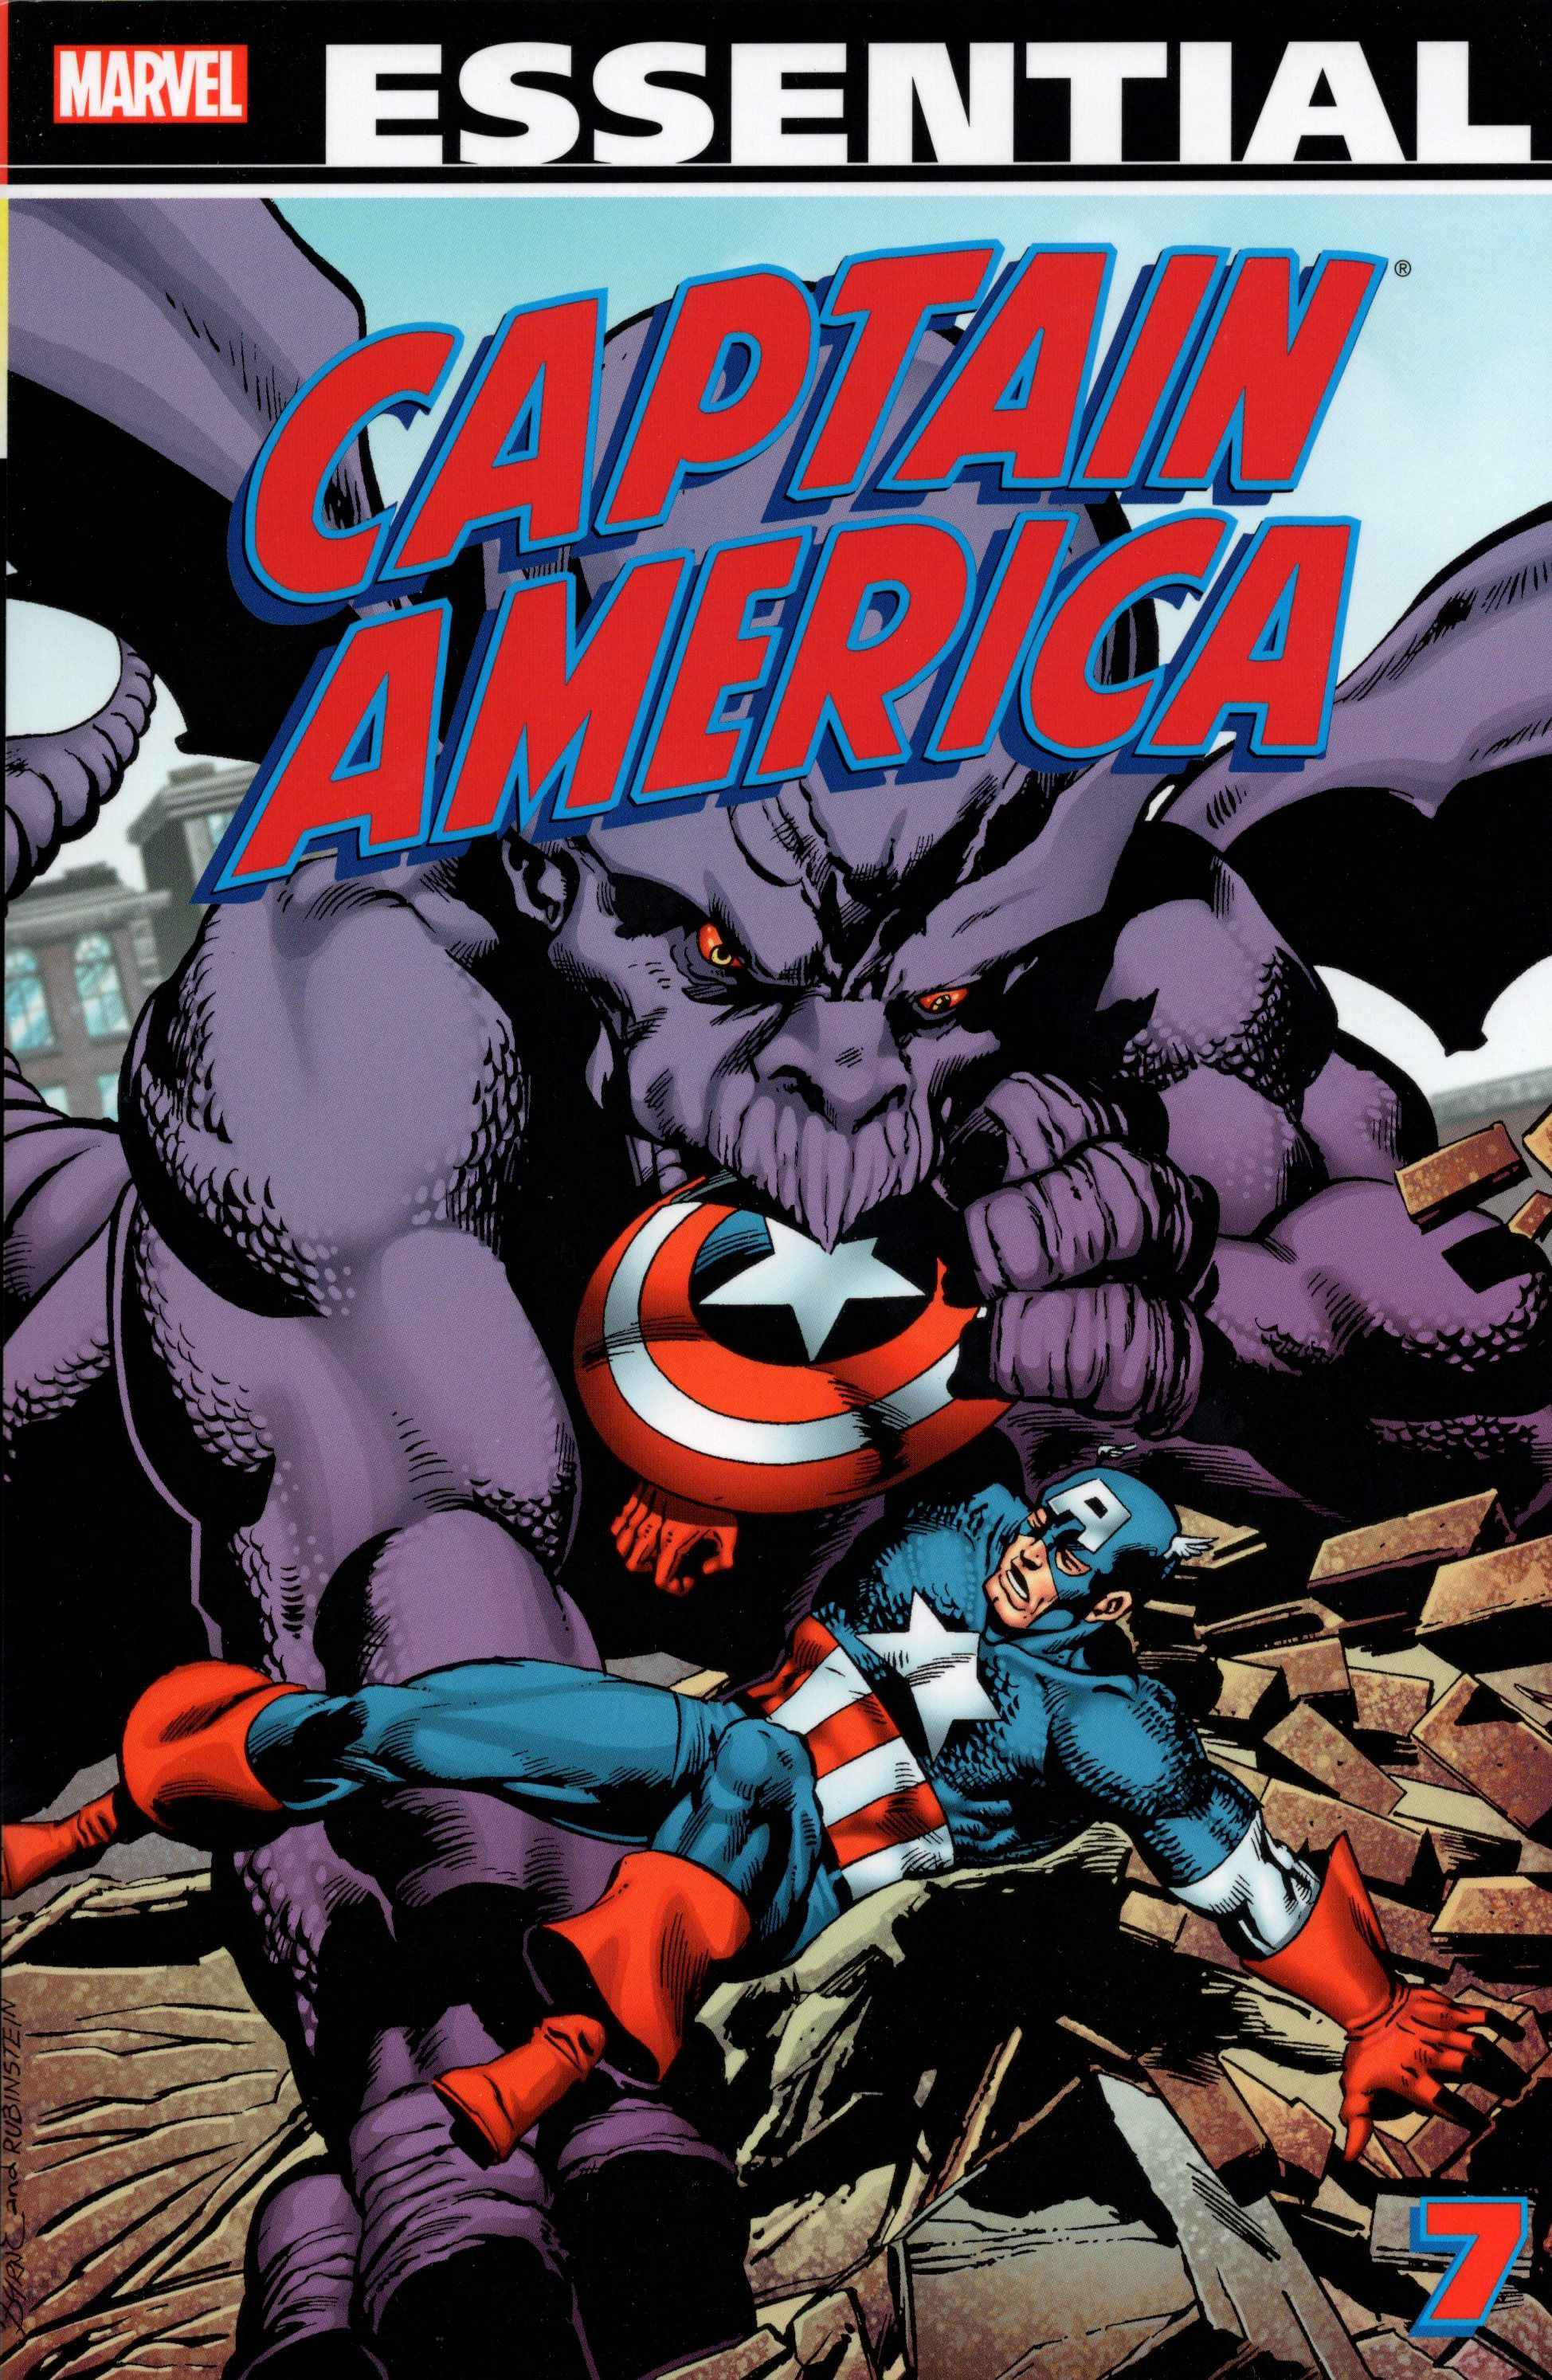 ESSENTIAL CAPTAIN AMERICA TP VOL 07